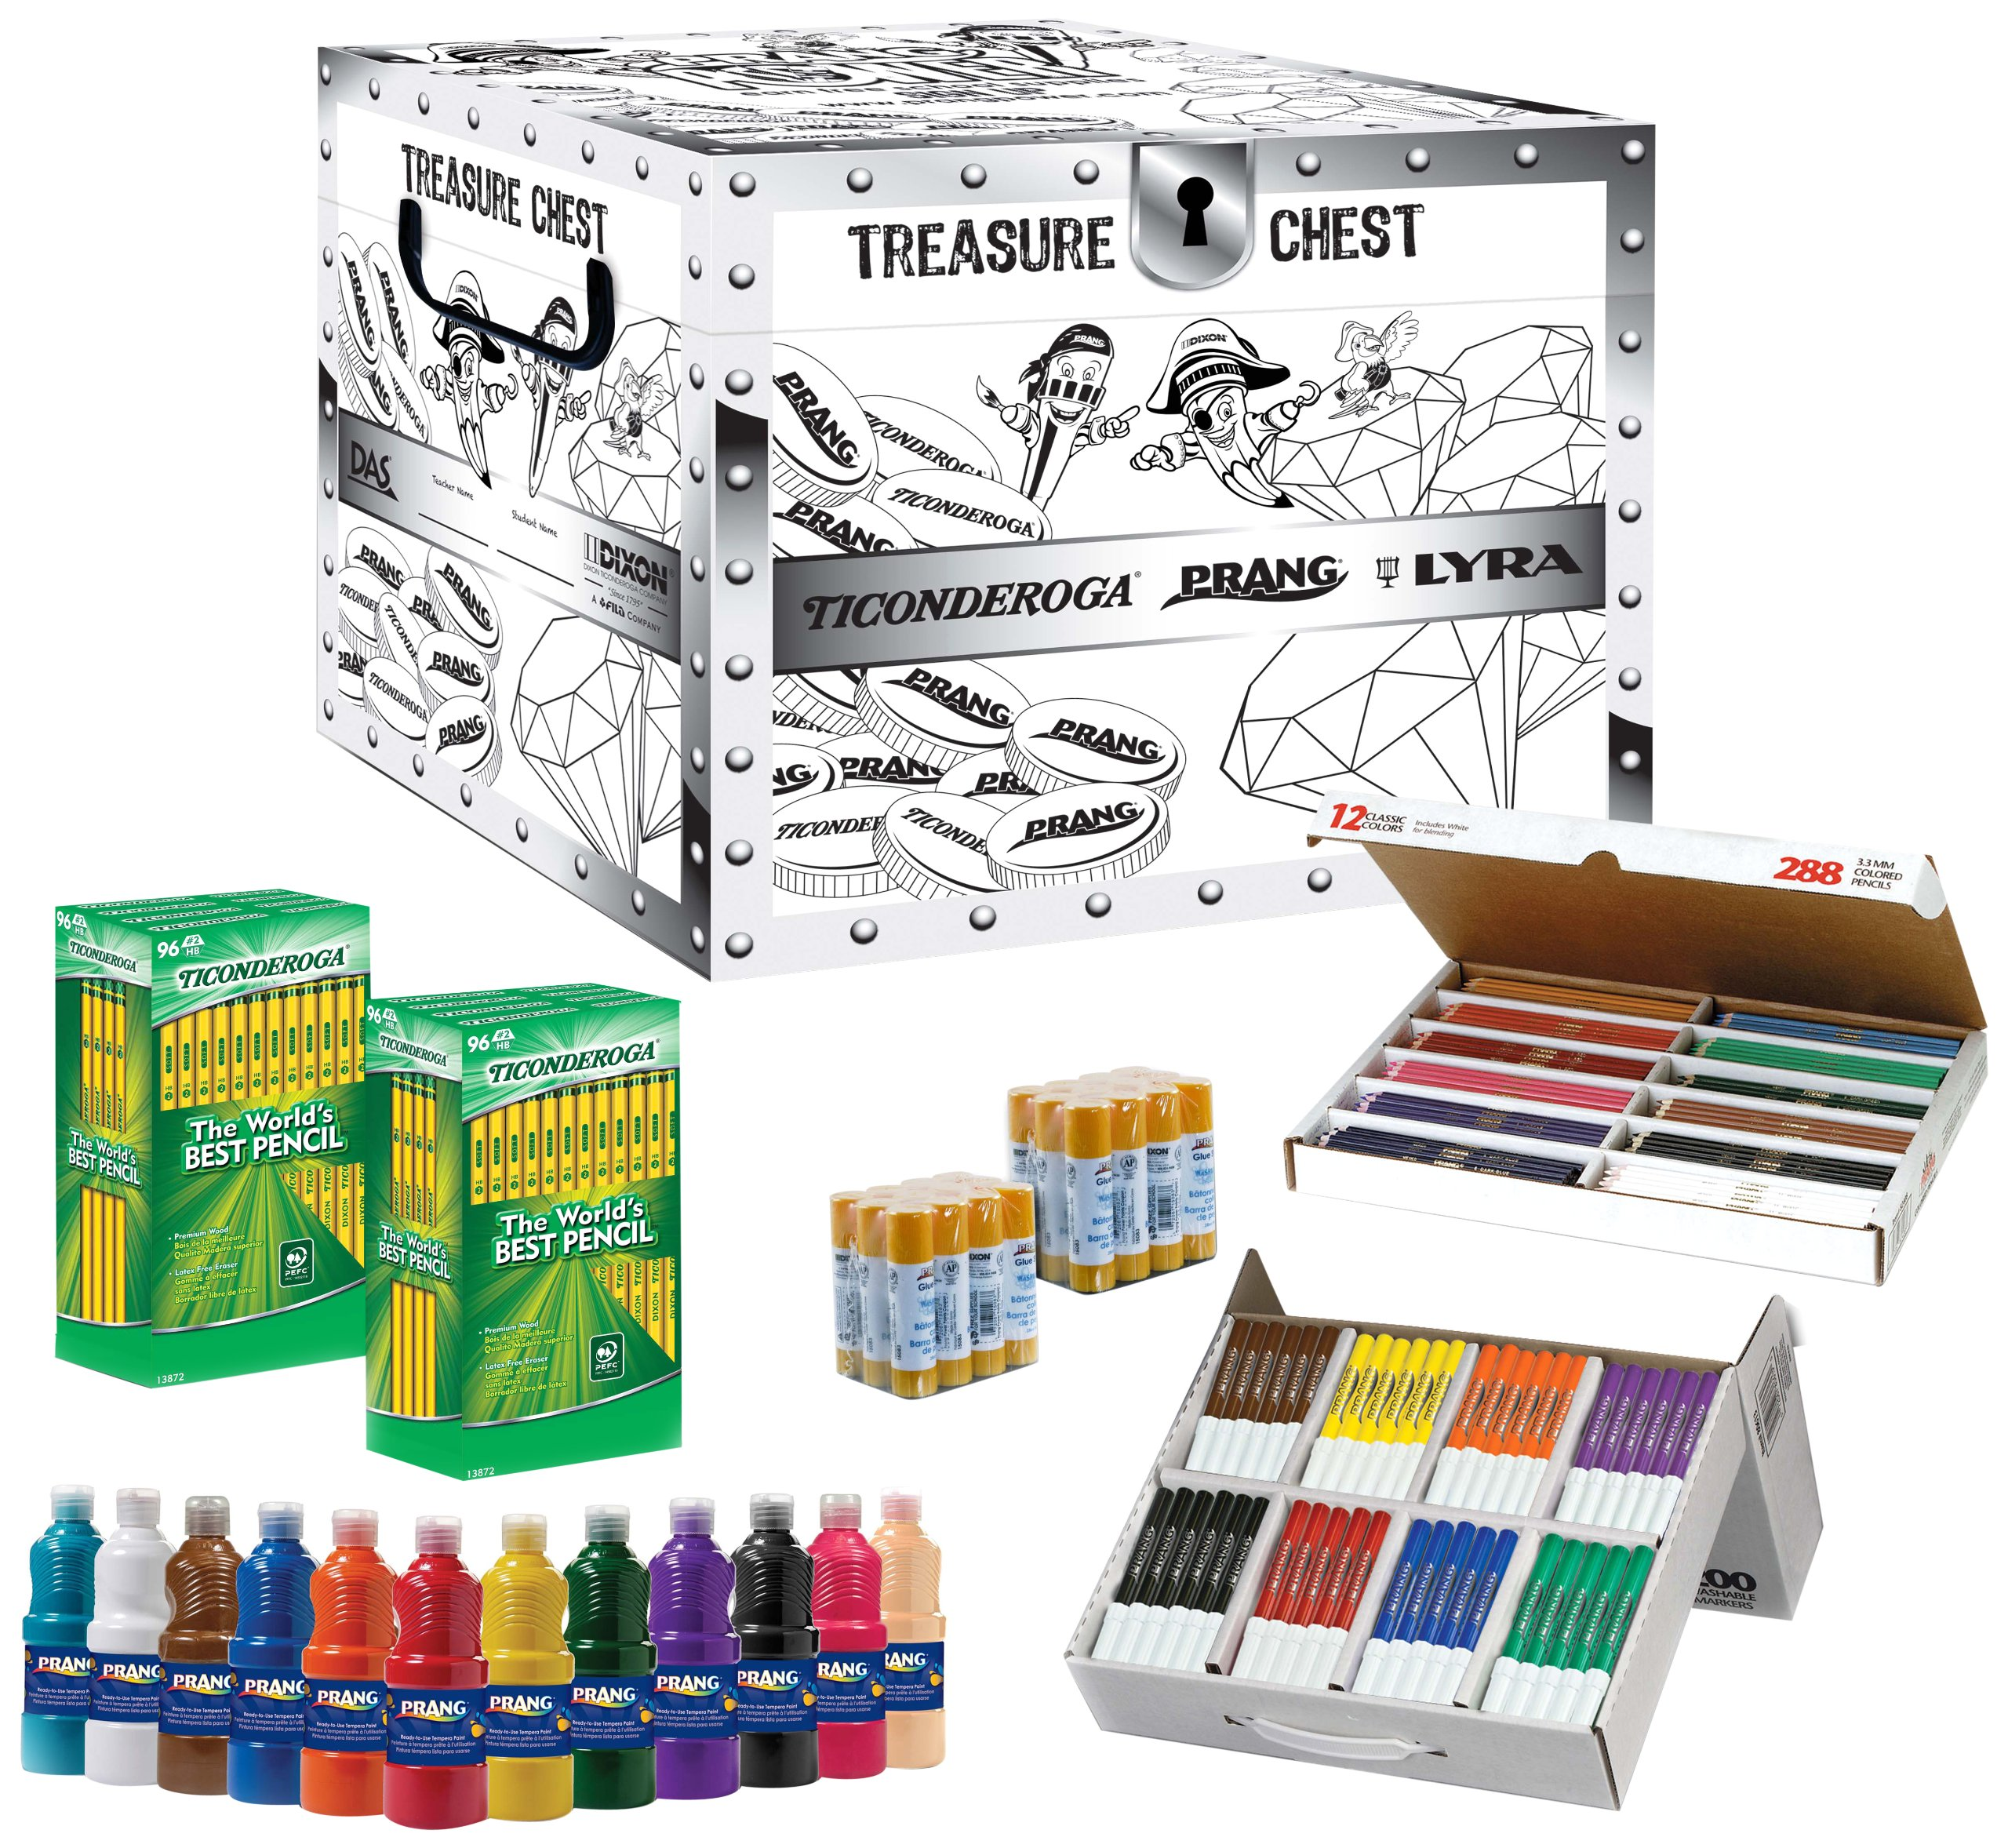 Dixon Prang Teacher's Kit with Activity Treasure Chest, Includes Markers, Colored Pencils, Tempura Paint and Glue Sticks, Assorted Colors (43106)